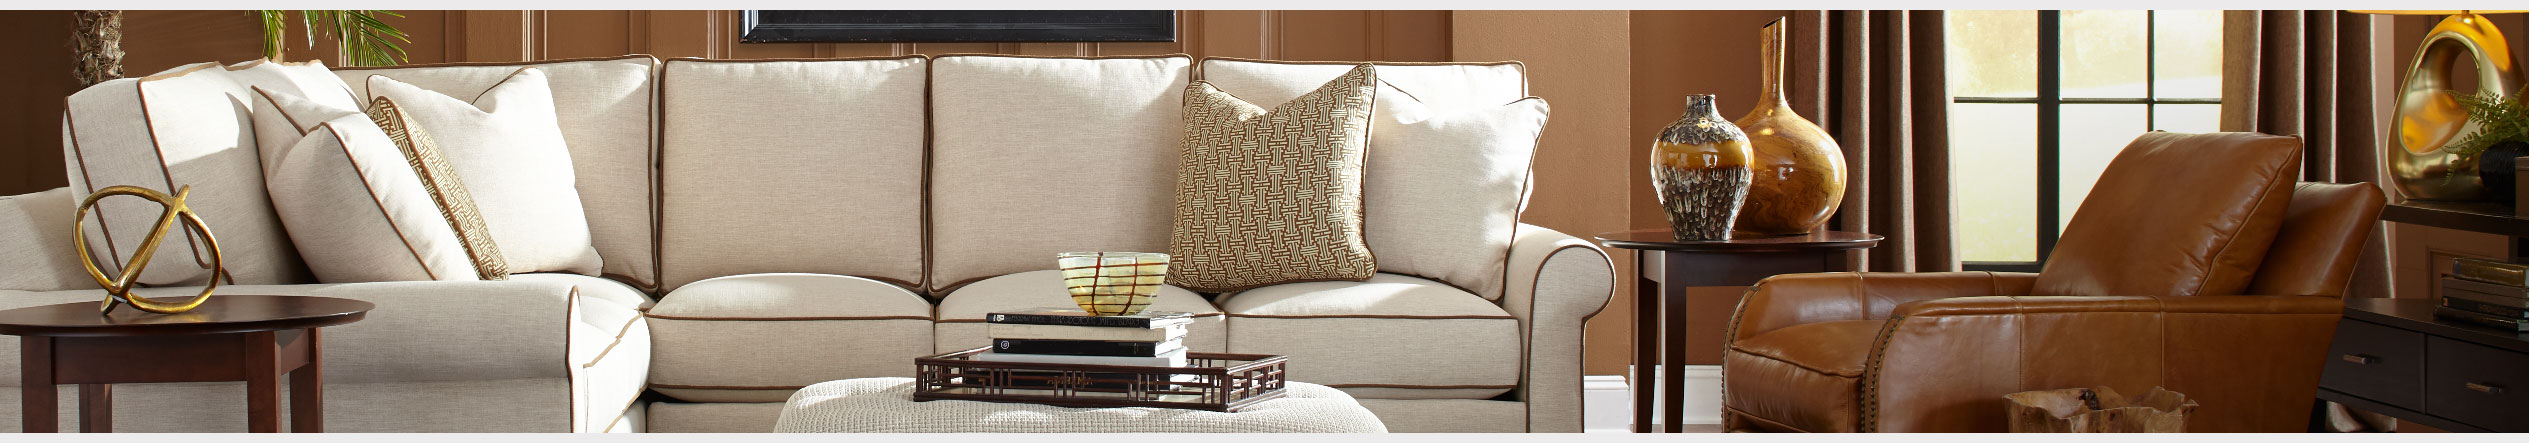 Room Planner at Jordan's Furniture stores in CT, MA, NH, and RI